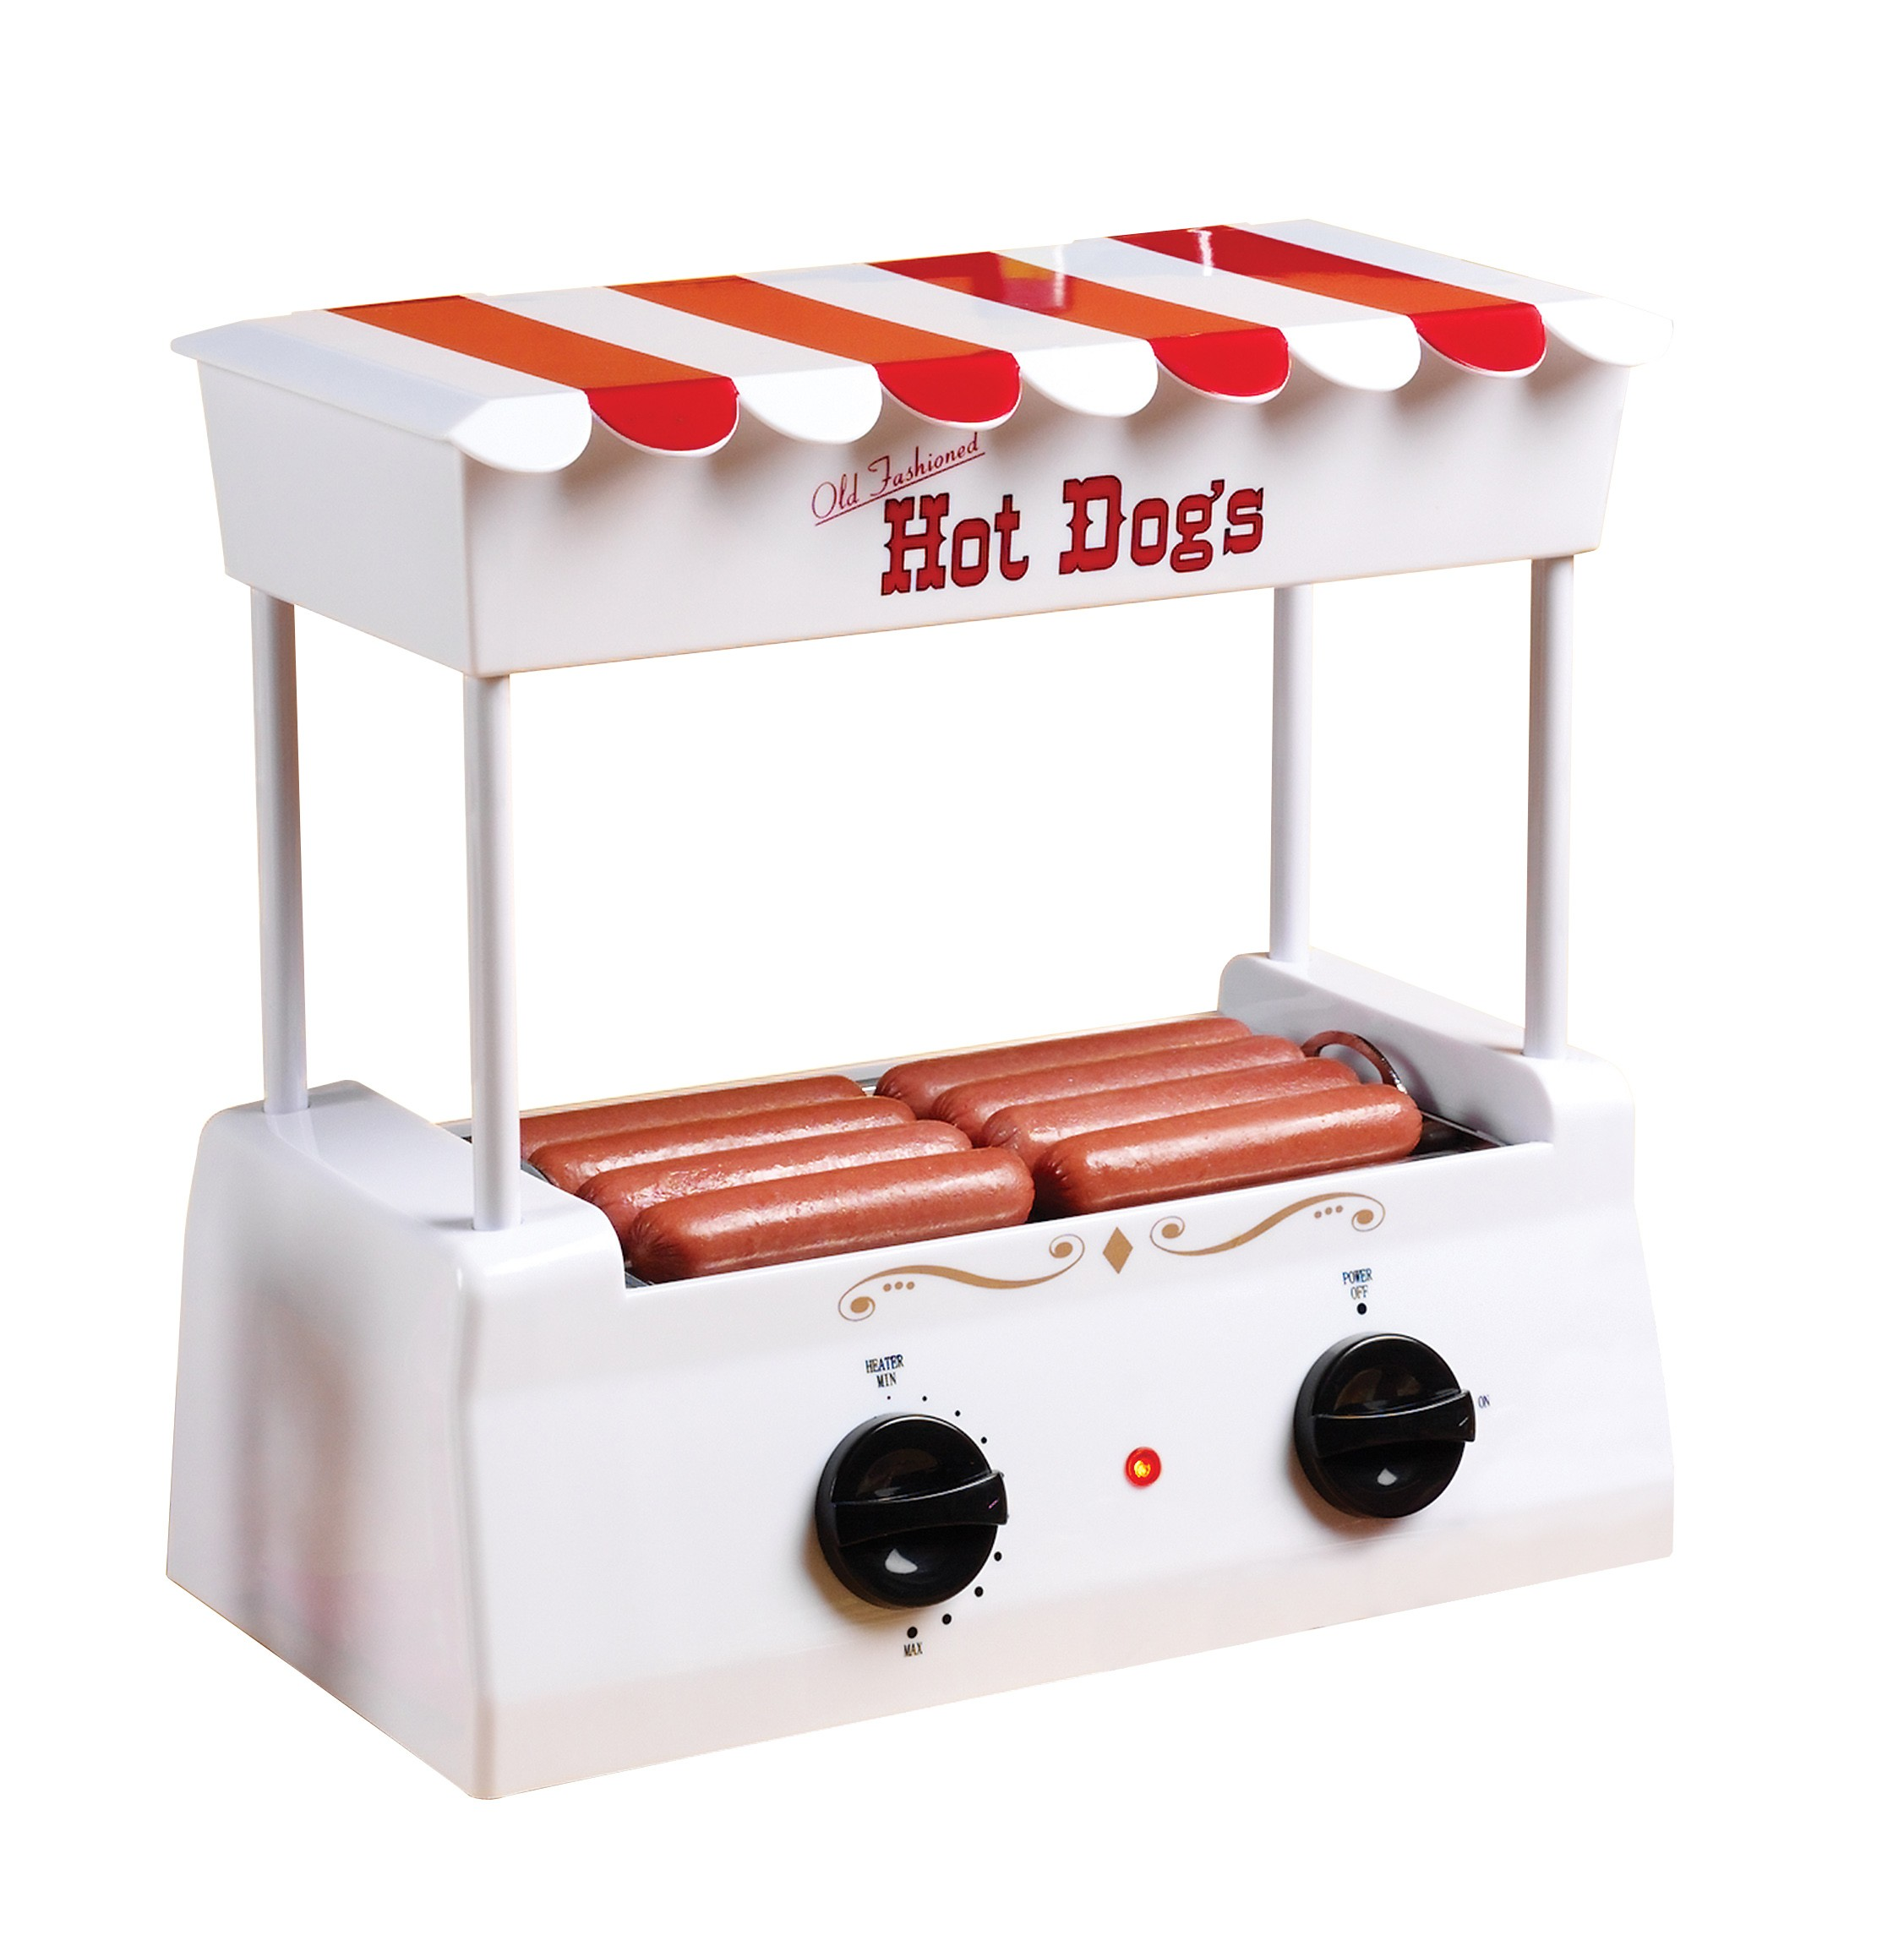 Hot Dog Roller & Bun Warmer